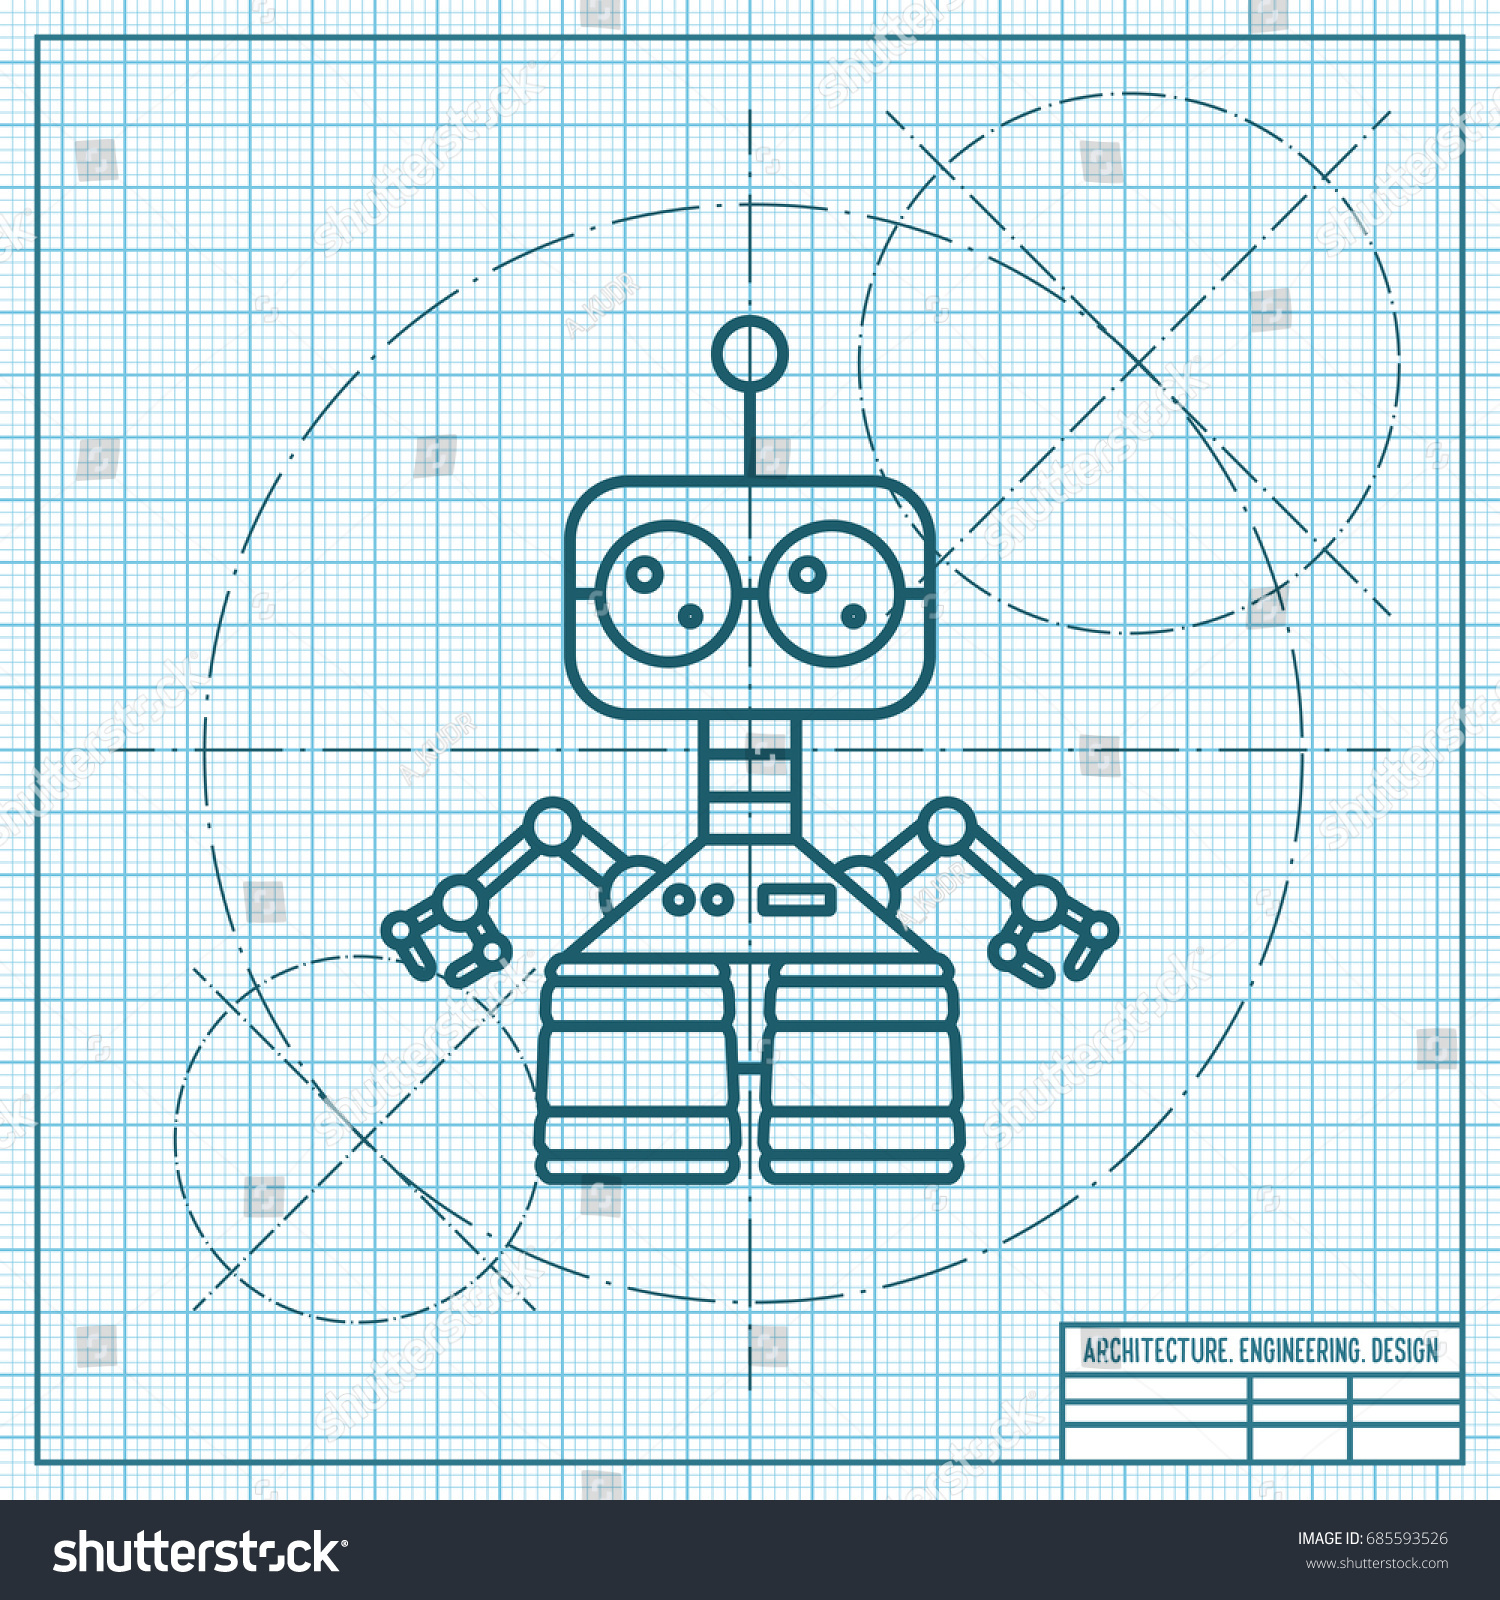 Vector blueprint retro robot toy icon vectores en stock 685593526 vector blueprint retro robot toy icon vectores en stock 685593526 shutterstock malvernweather Images